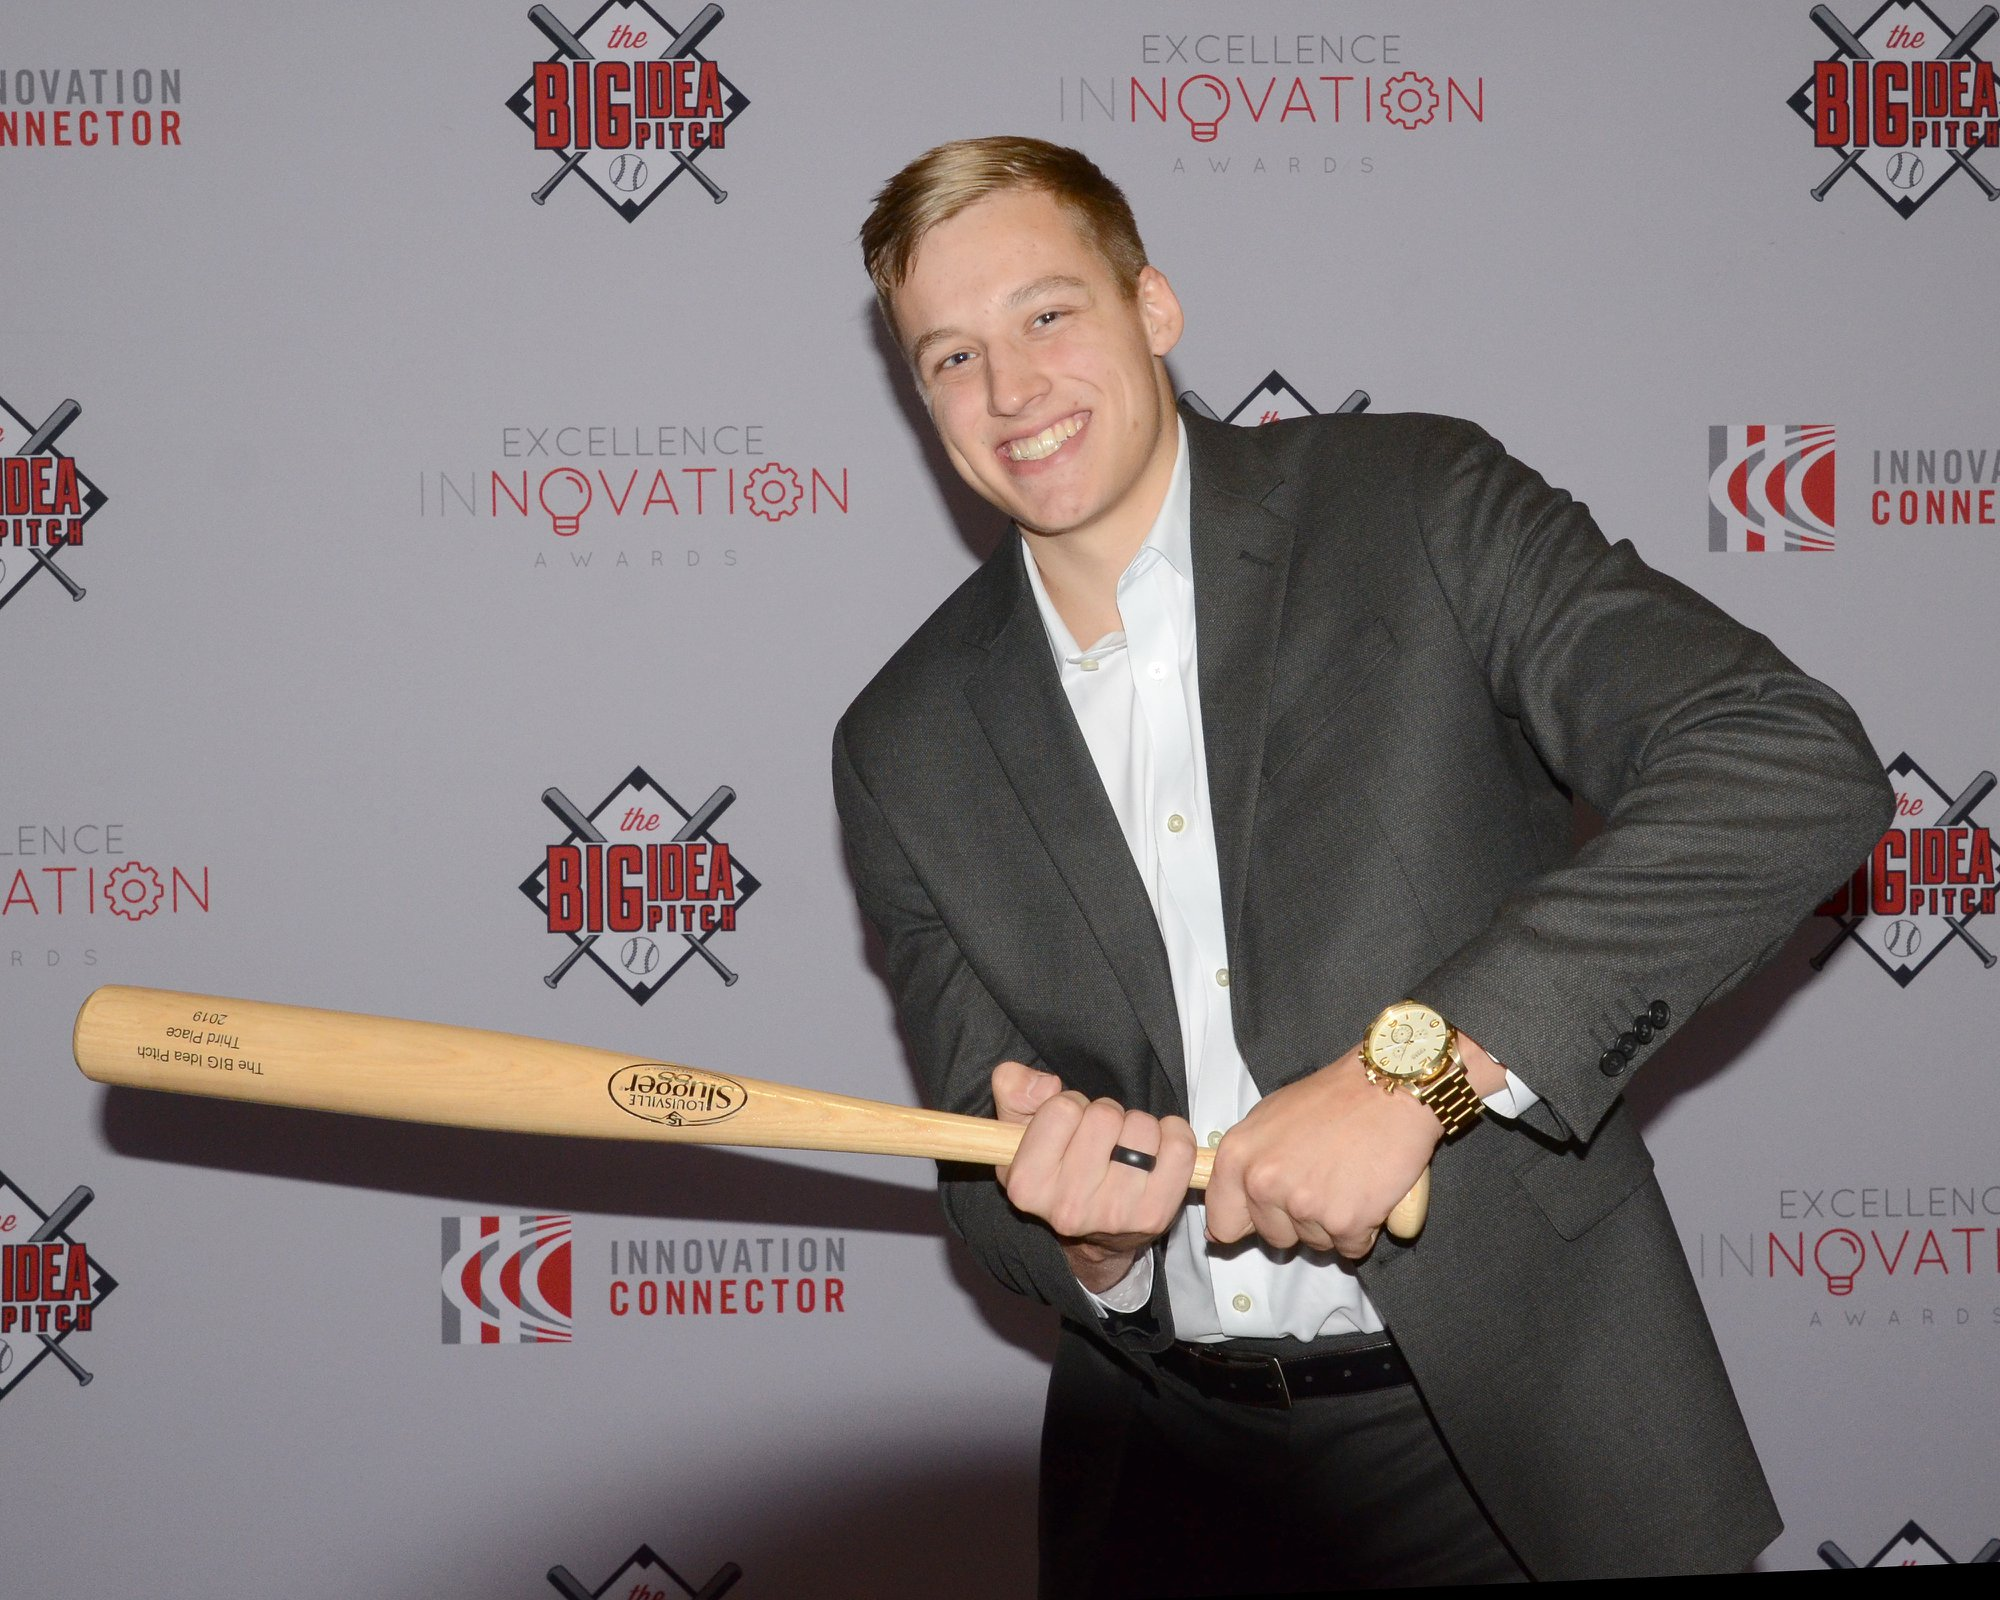 "<strong><span style=""color: #ff0000;"">Third Place Winner of the BIG Idea Pitch 2019 Competition, Carter Anderson</span></strong>"